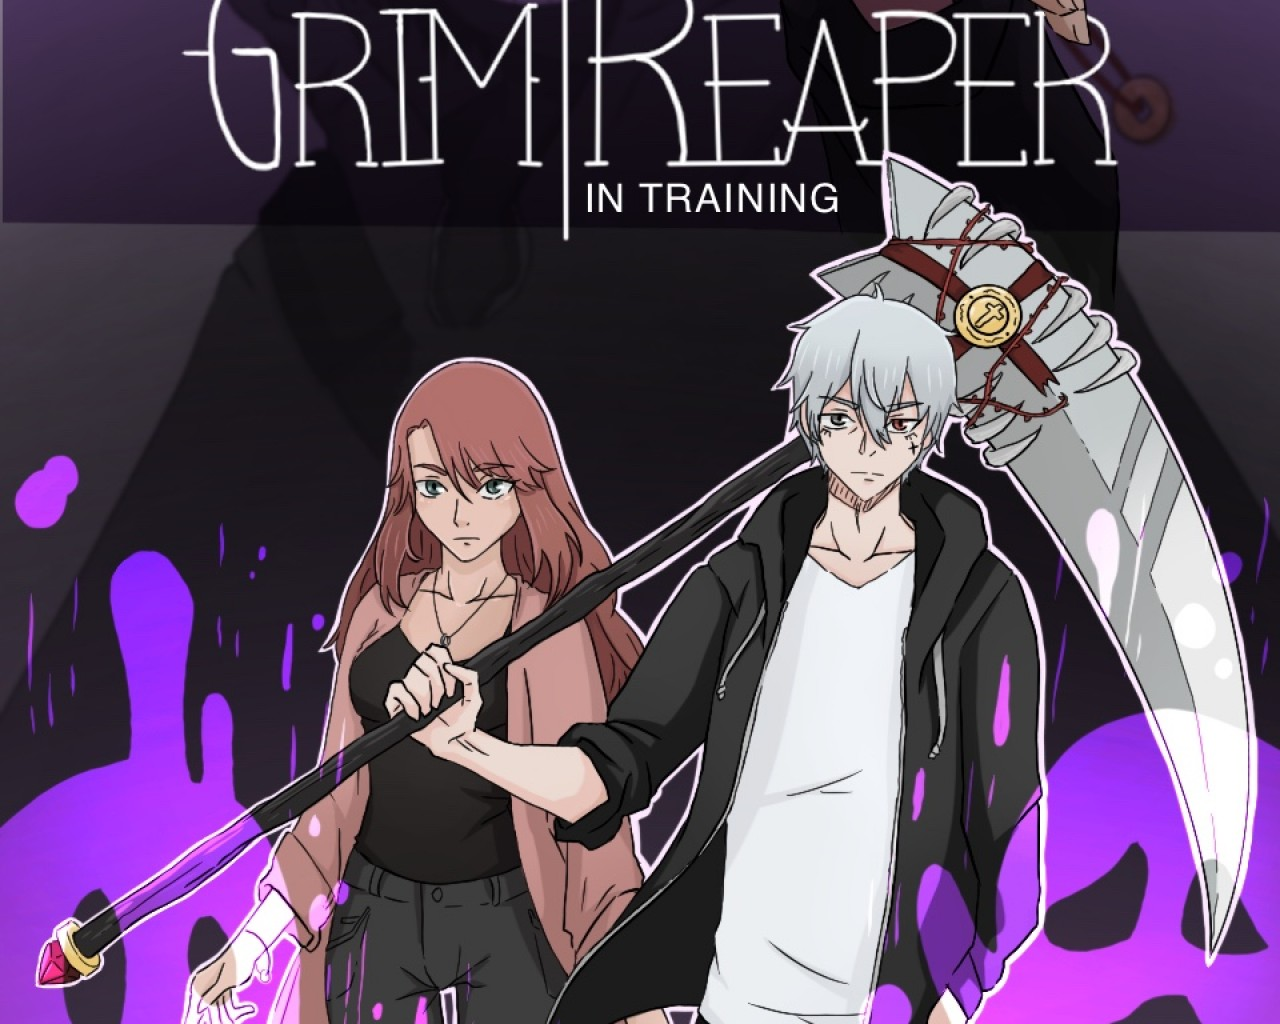 Poster Image for Grim Reaper in training